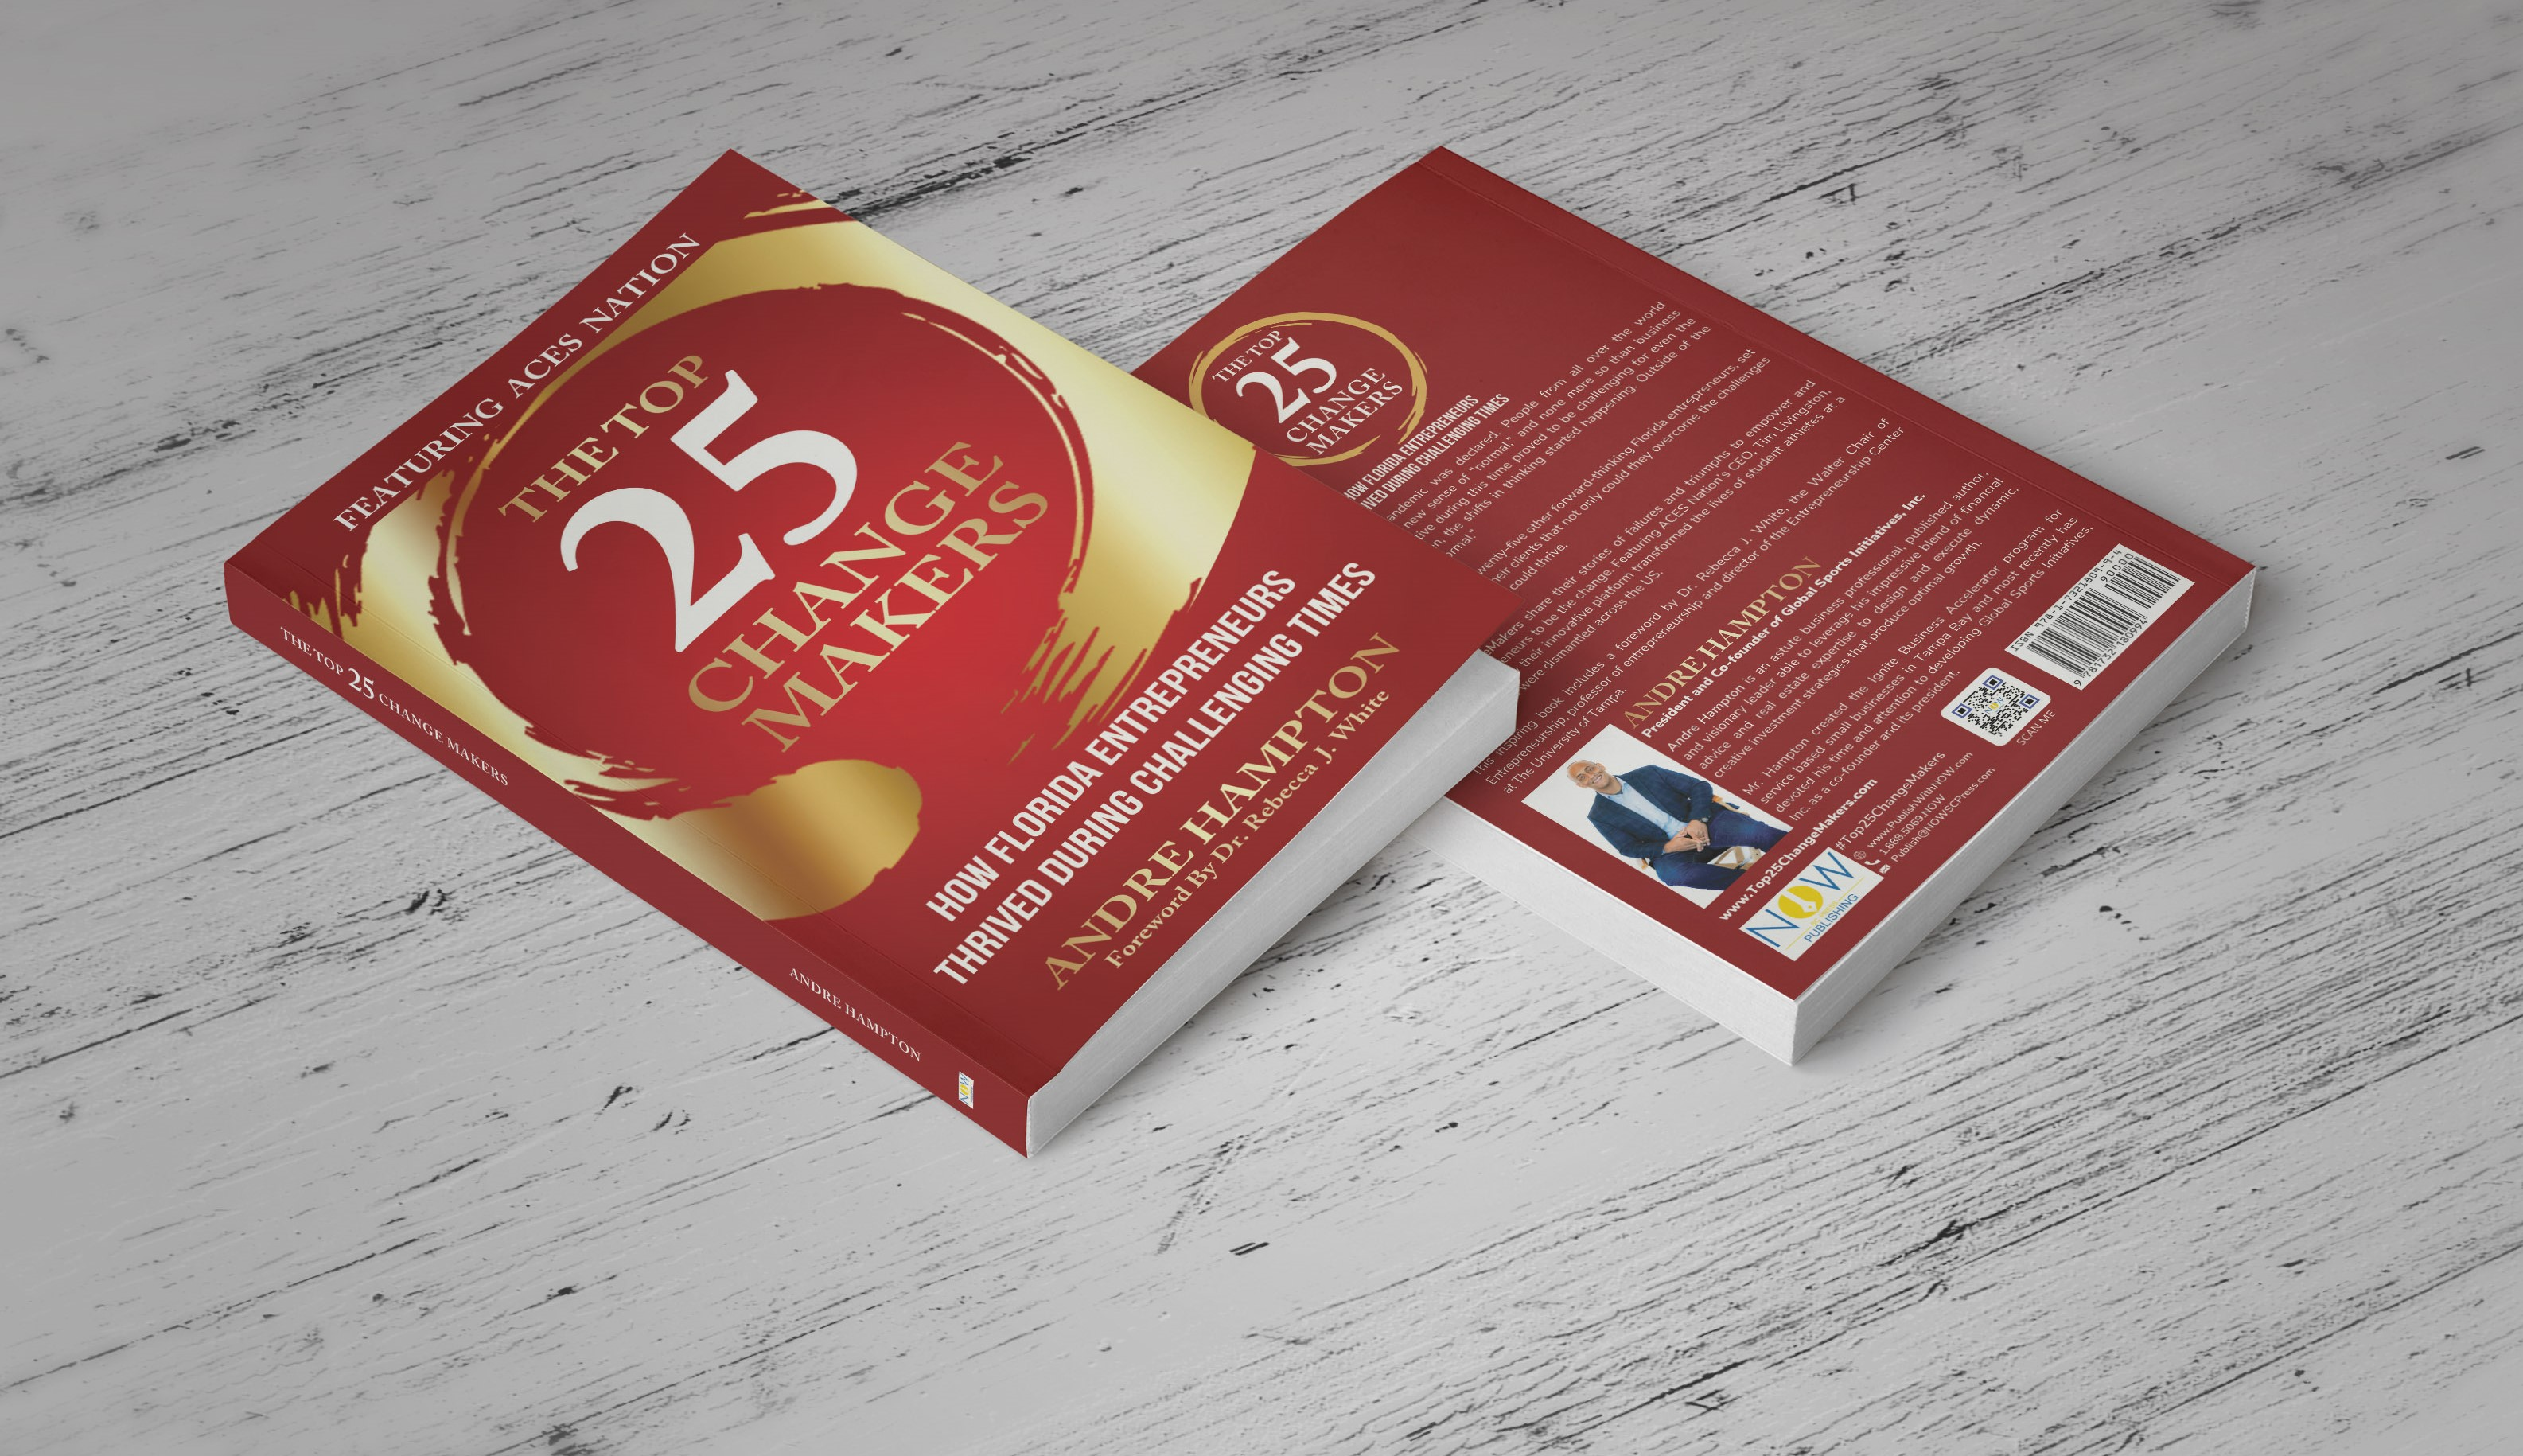 Florida Top 25 Change Makers Book Cover